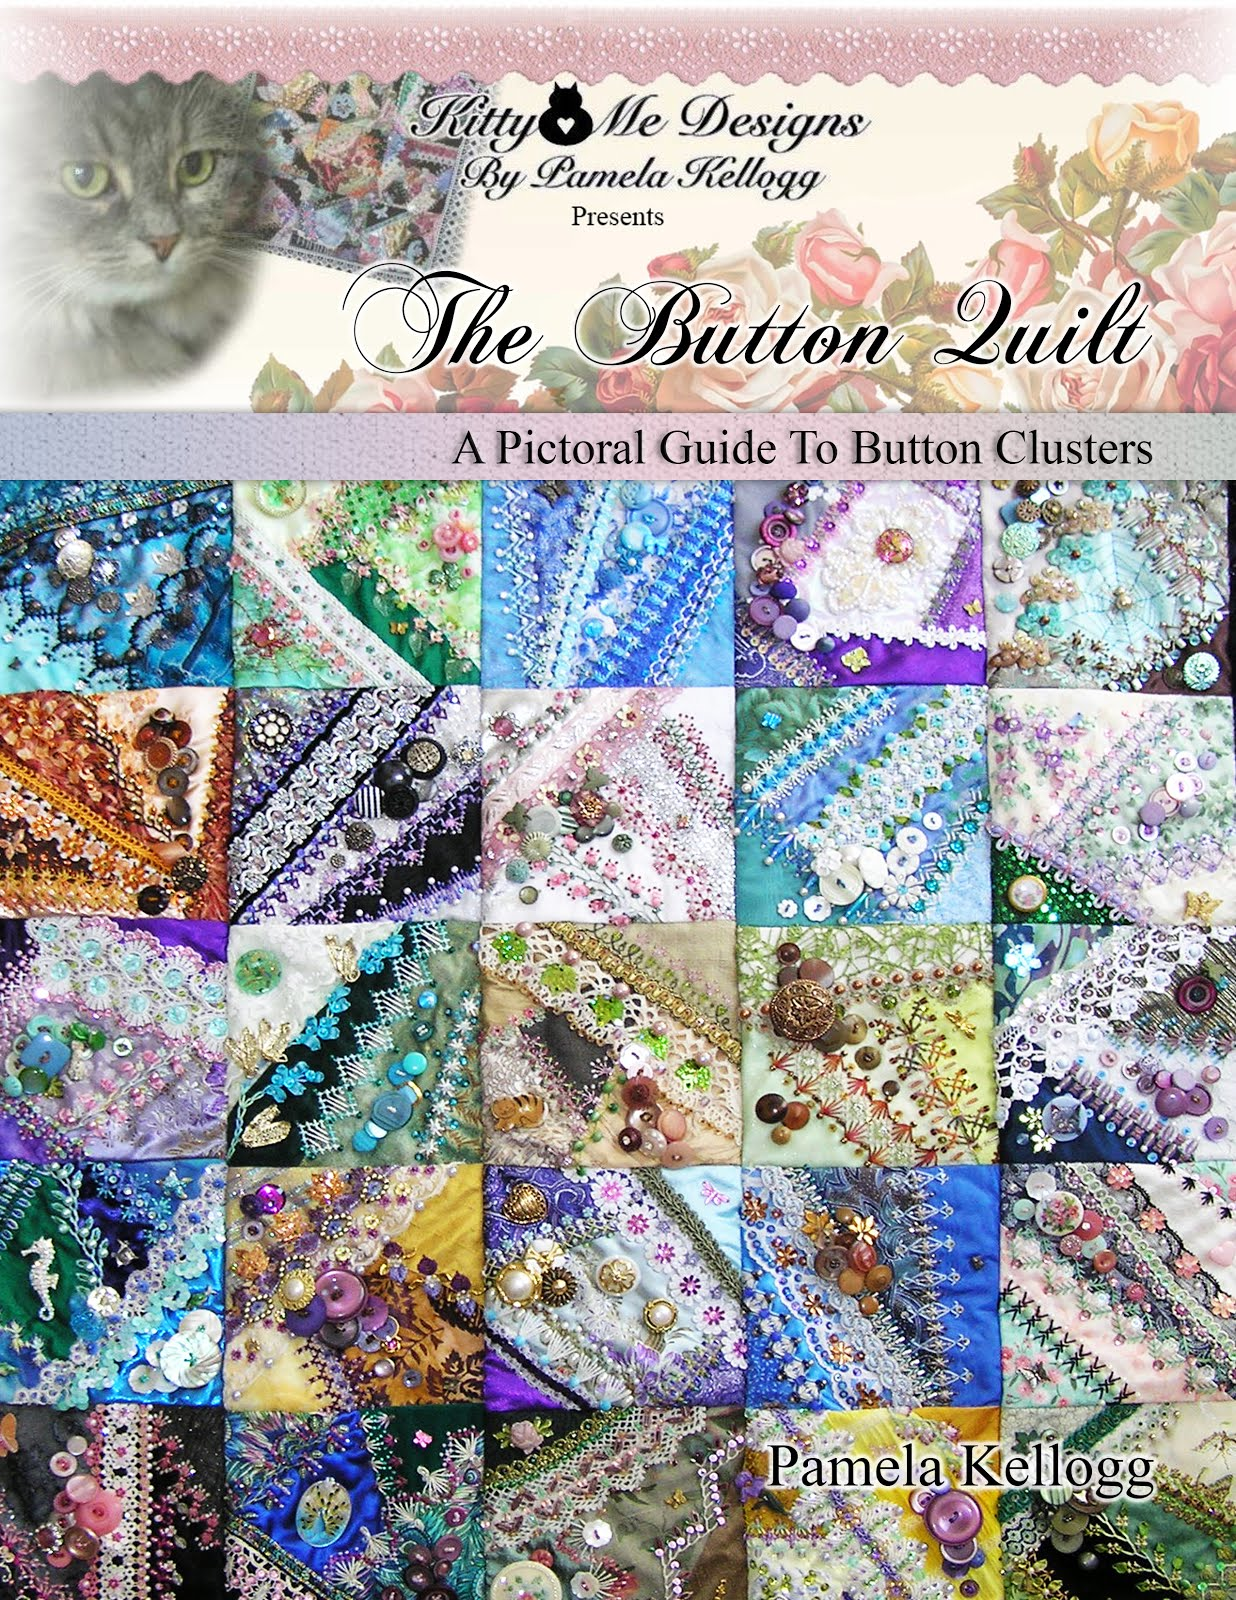 The Button Quilt